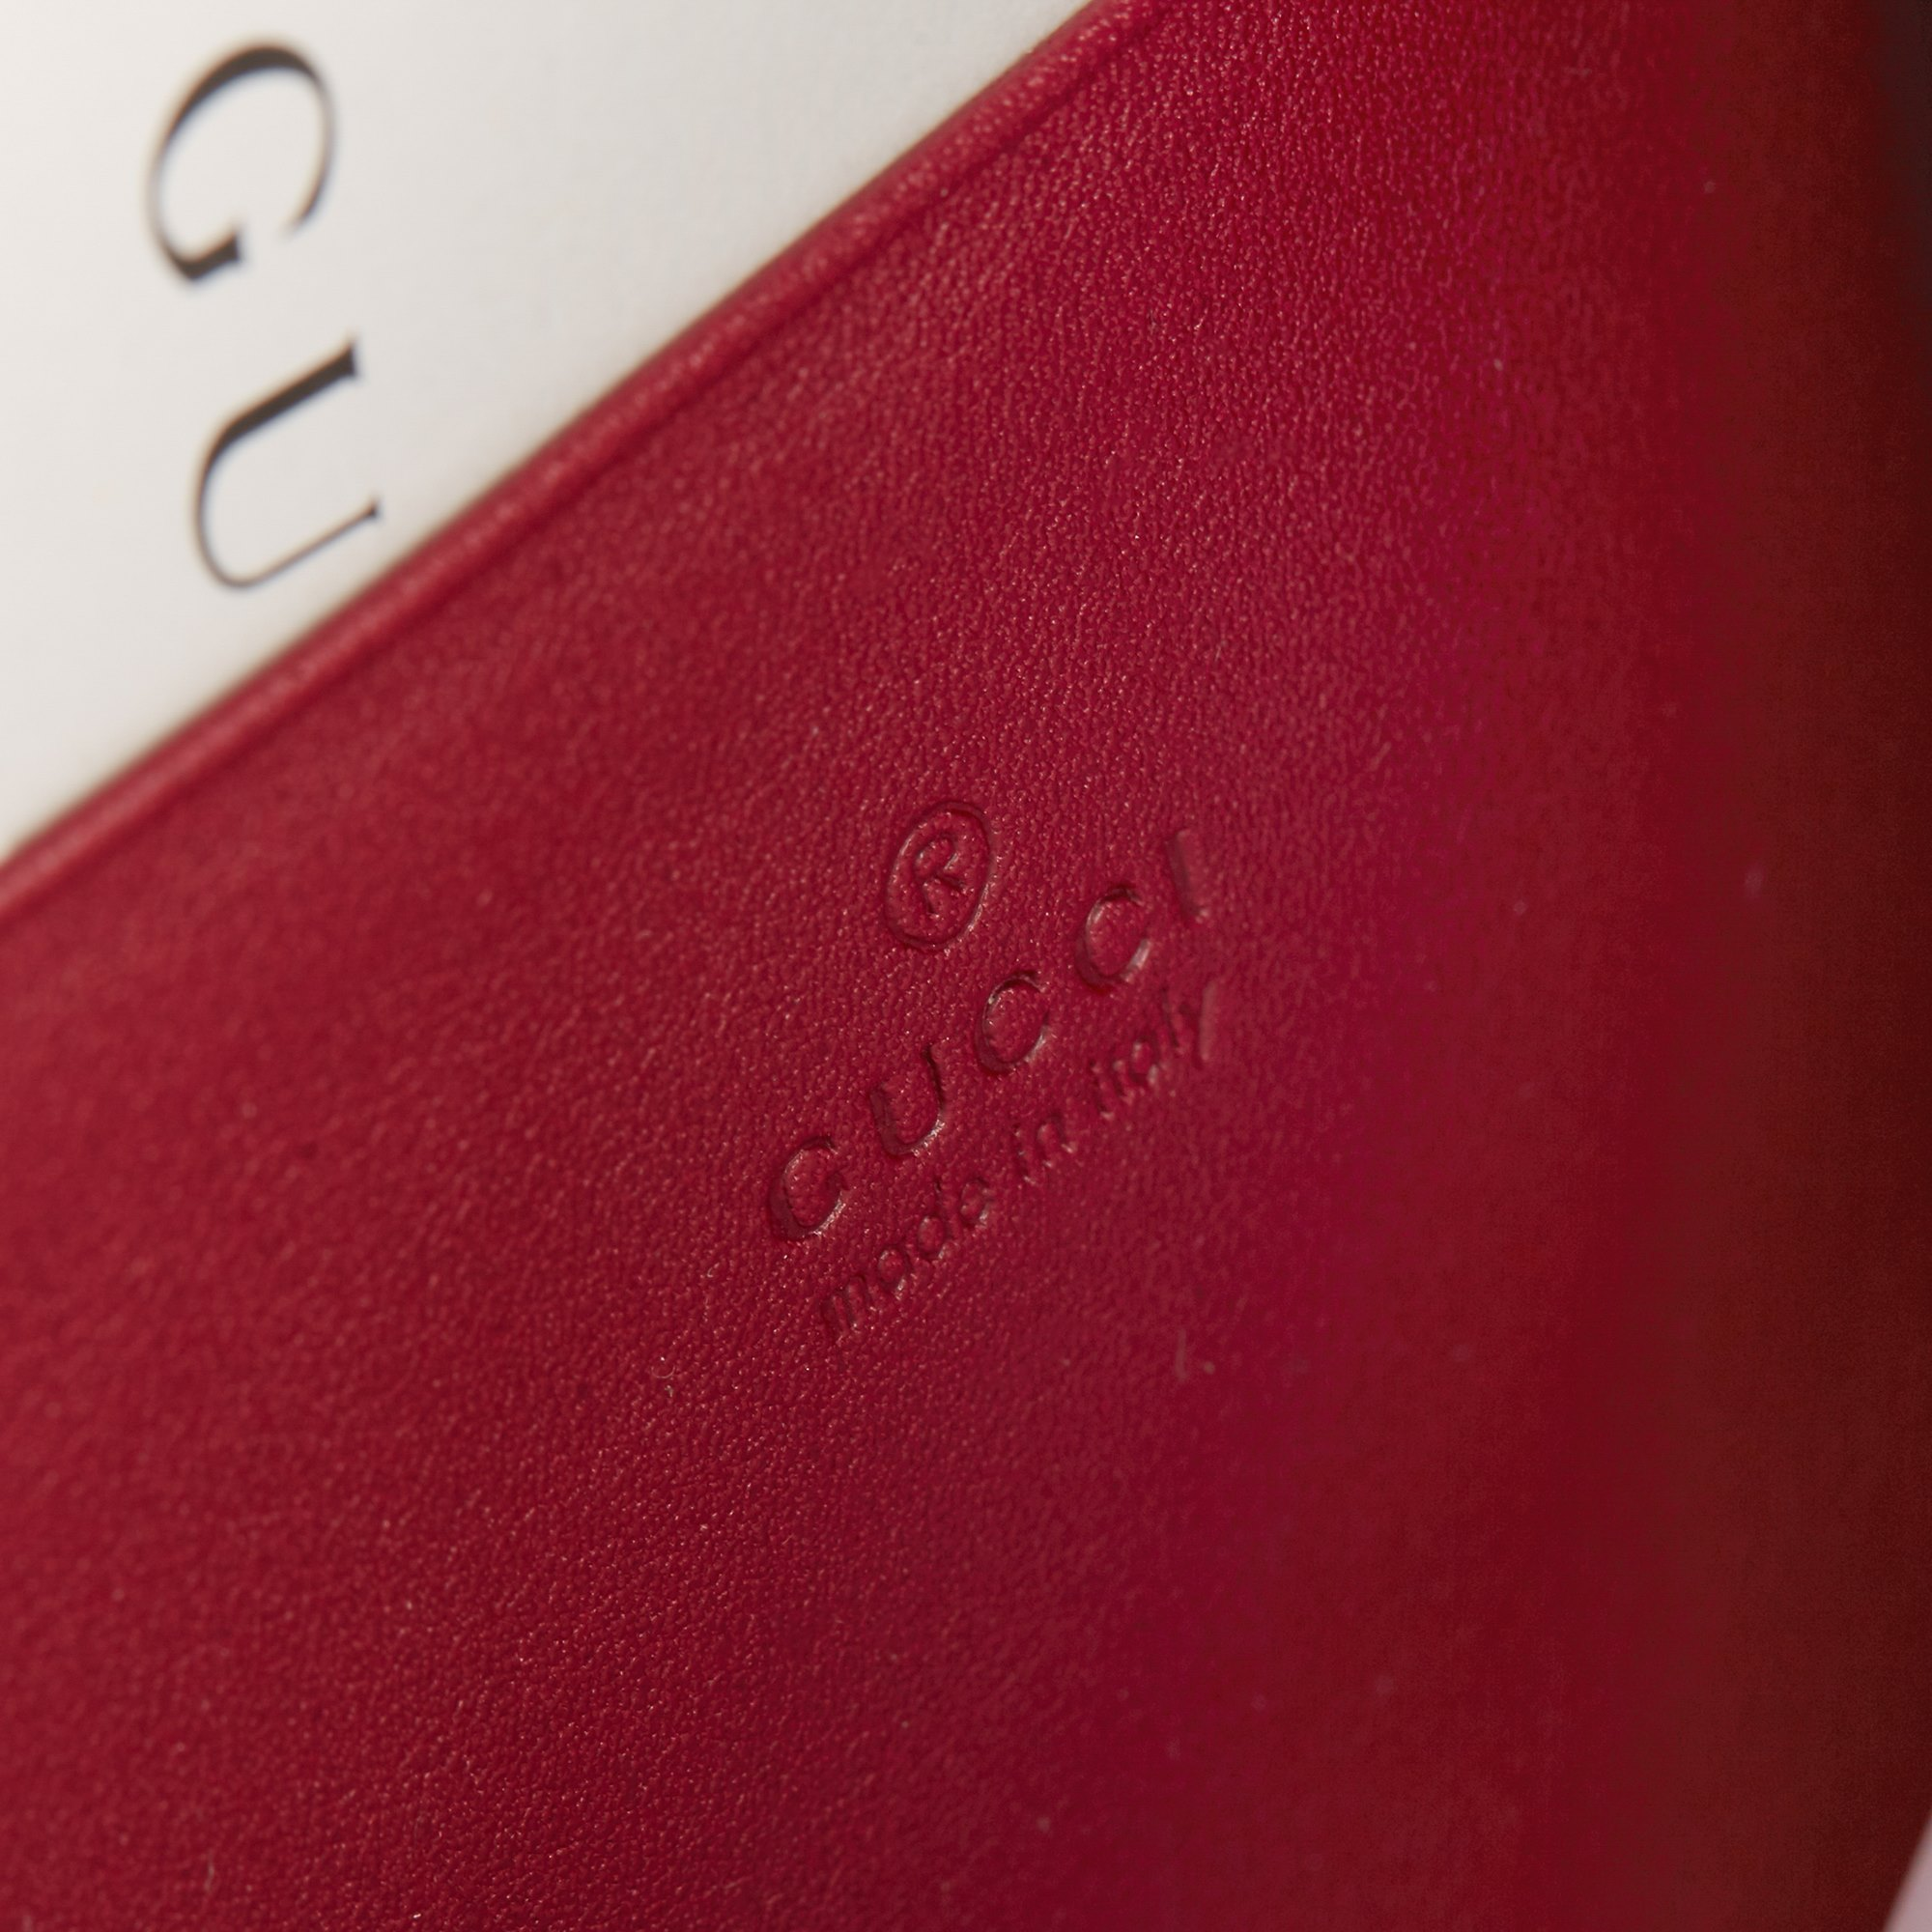 Gucci Red GG Velvet & Calfskin Leather Dionysus Wallet-on-Chain